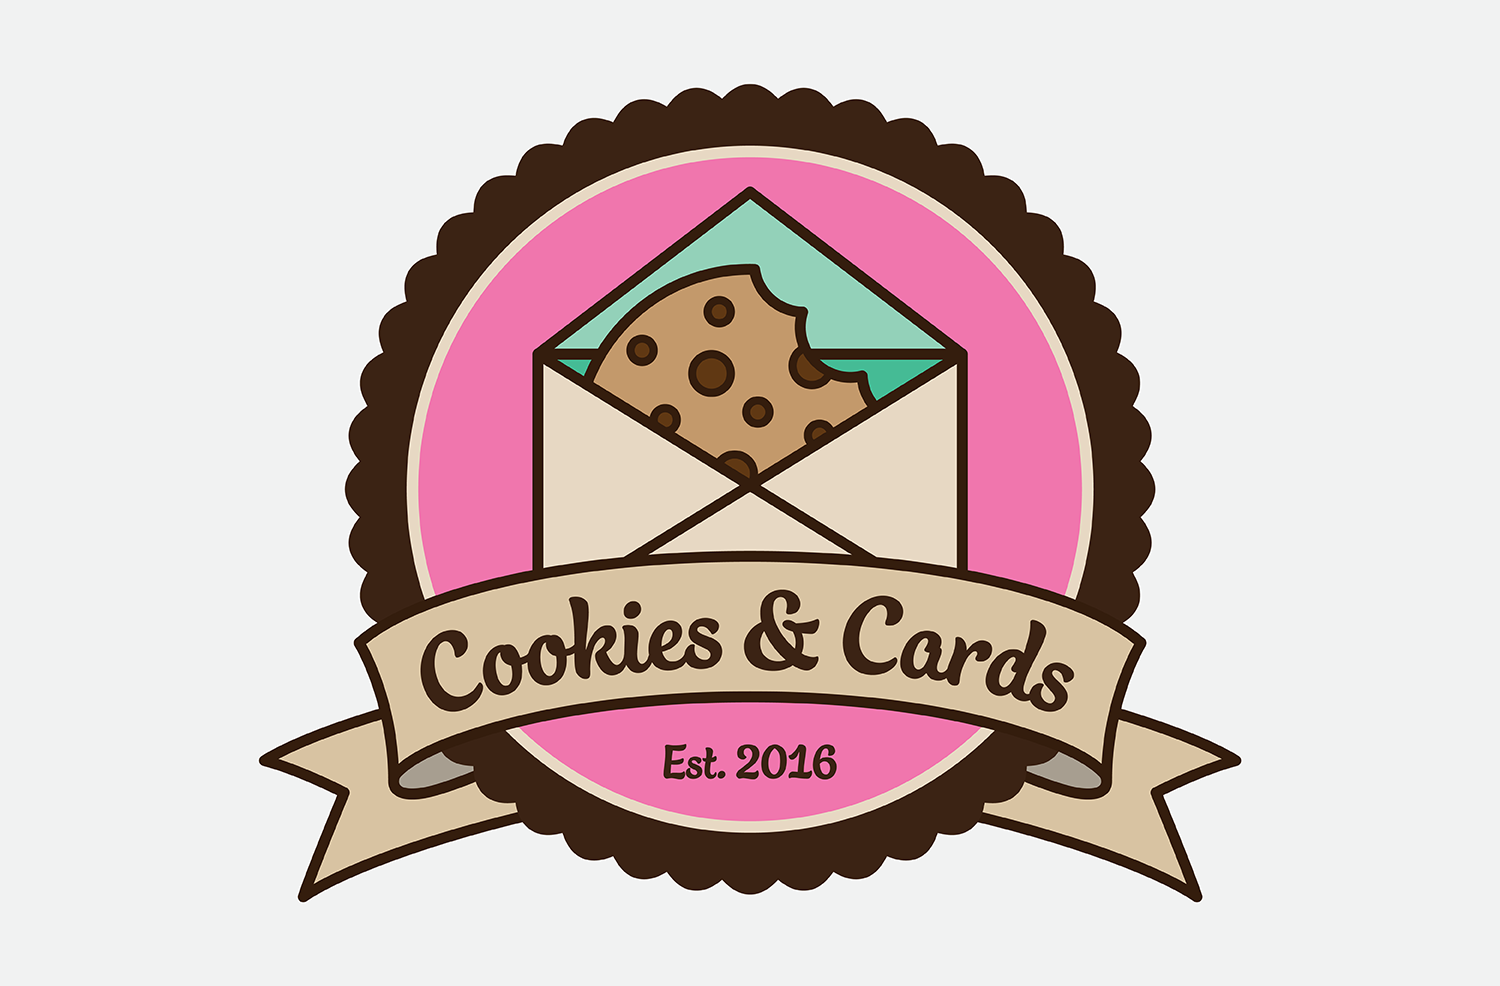 cookies-and-cards-logo-design.png